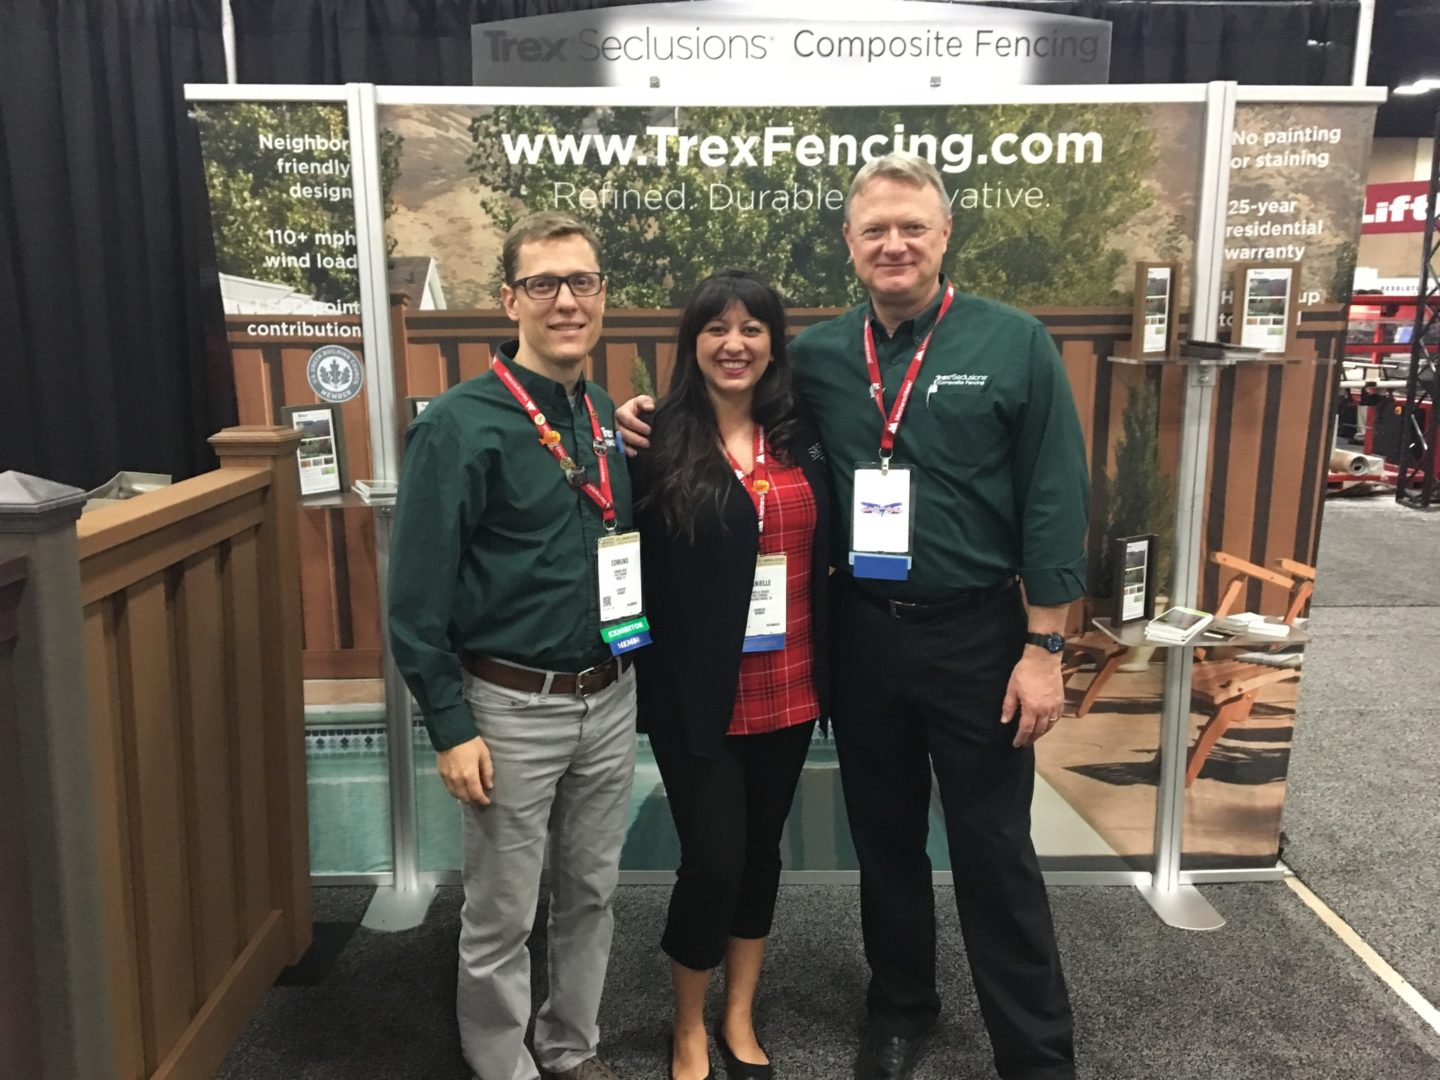 Staff members in the Trex Fencing booth at Fencetech 2017 in San Antonio